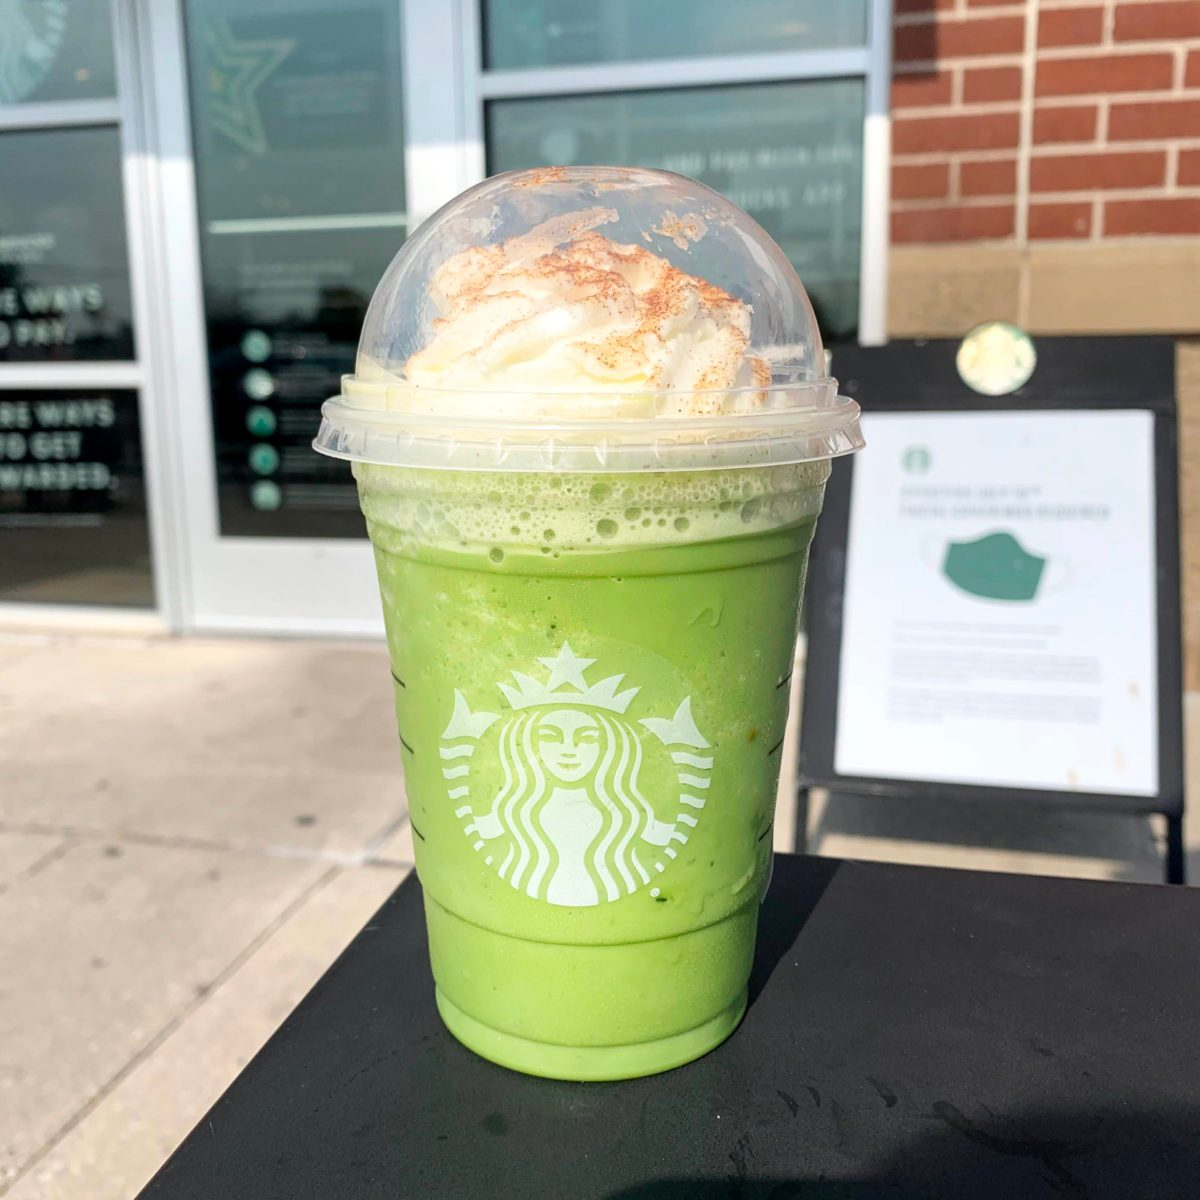 Buddy the Elf frappuccino from starbucks